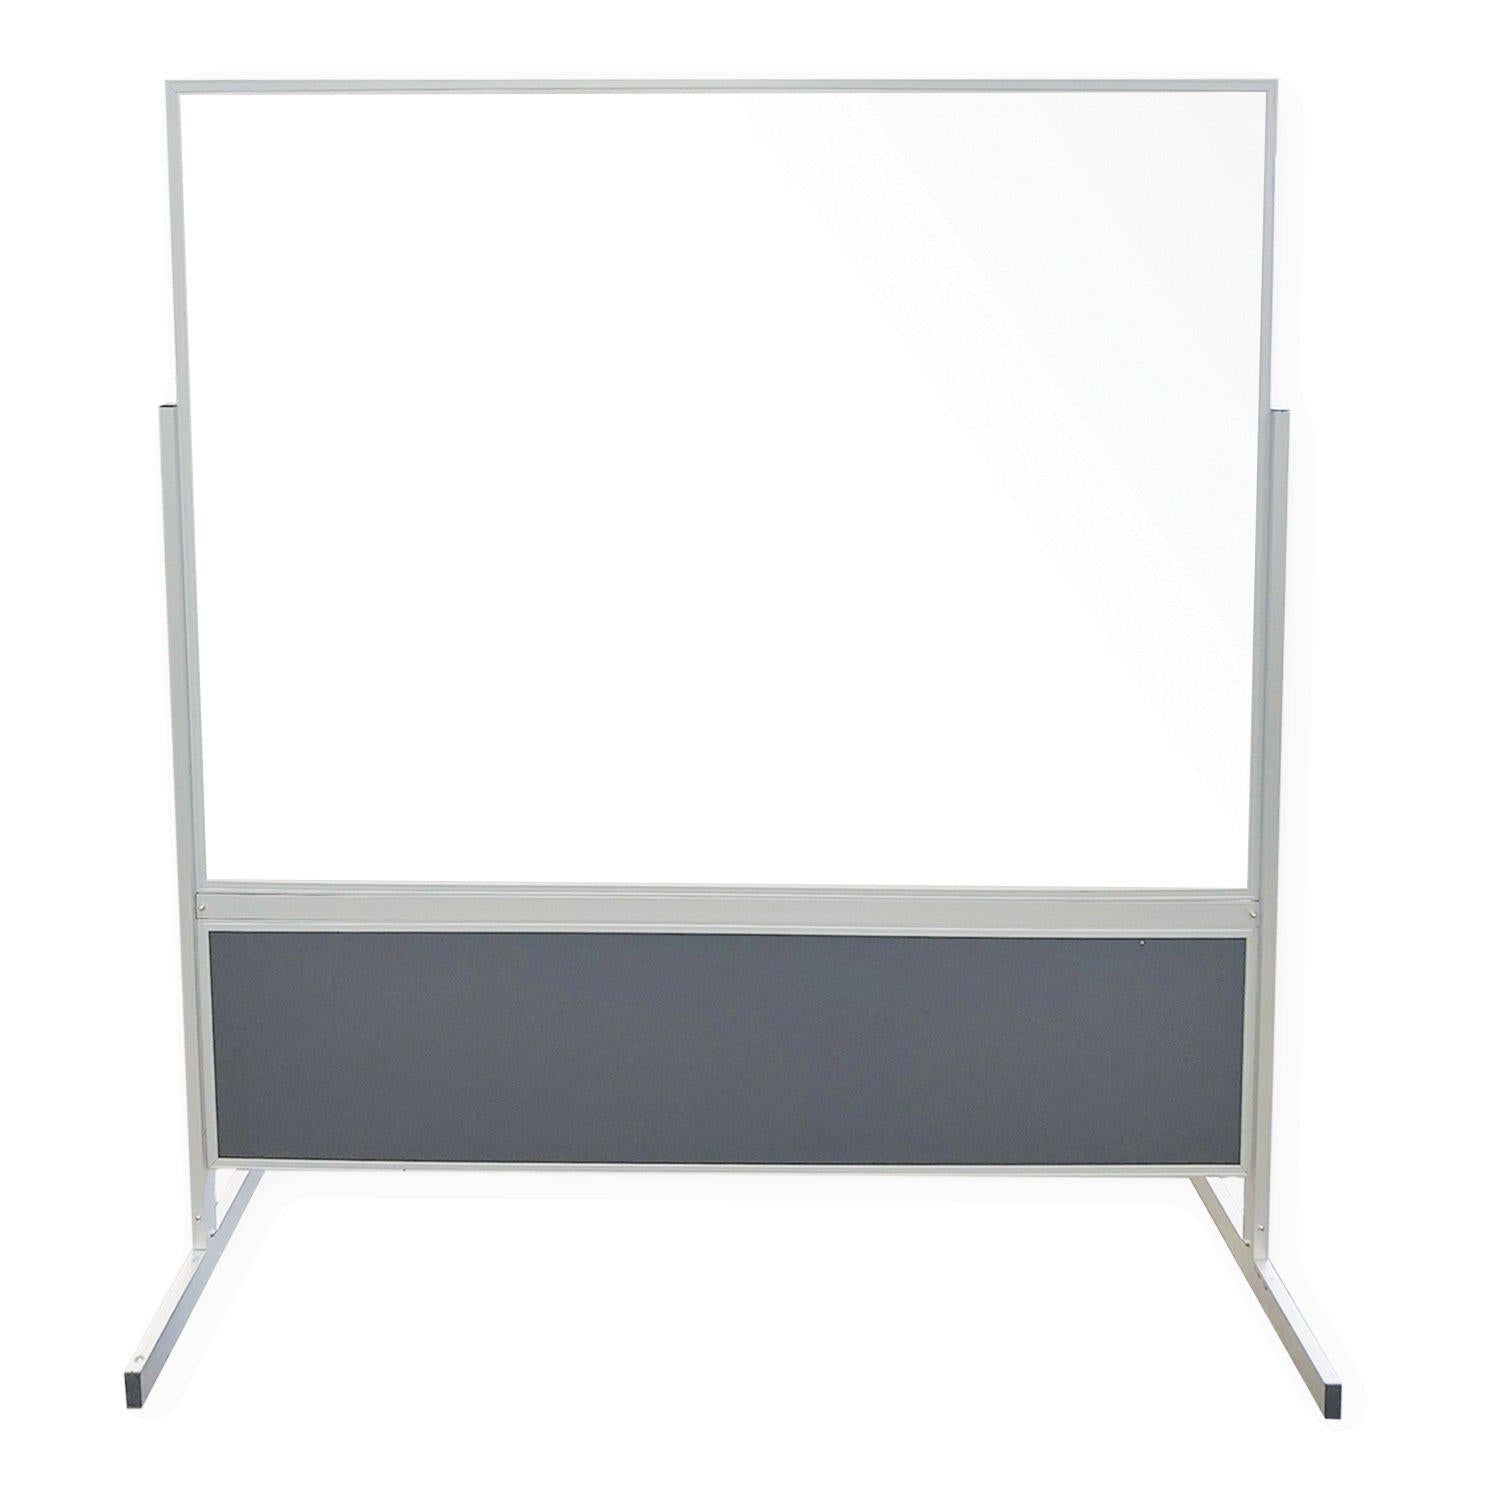 Double-Sided Mobile Partition, Magnetic Porcelain Whiteboard and Vinyl Tackboard with Aluminum Frame, 6' H x 6' W